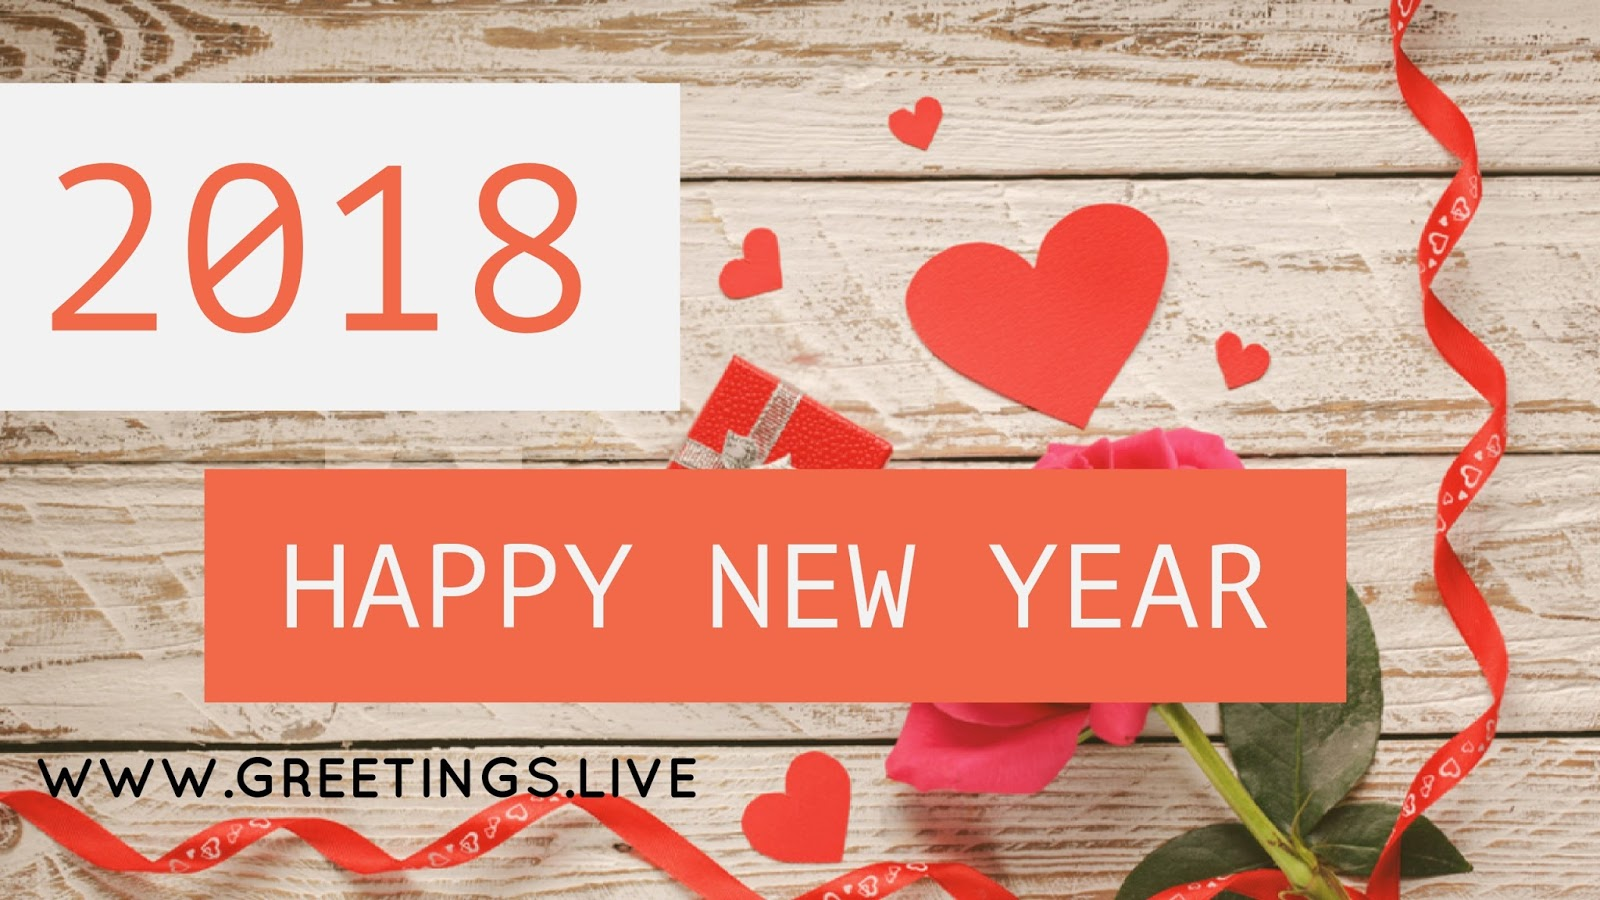 Greetingsve hd images love smile birthday wishes free download simple smart love proposal new year 2018 wish kristyandbryce Image collections